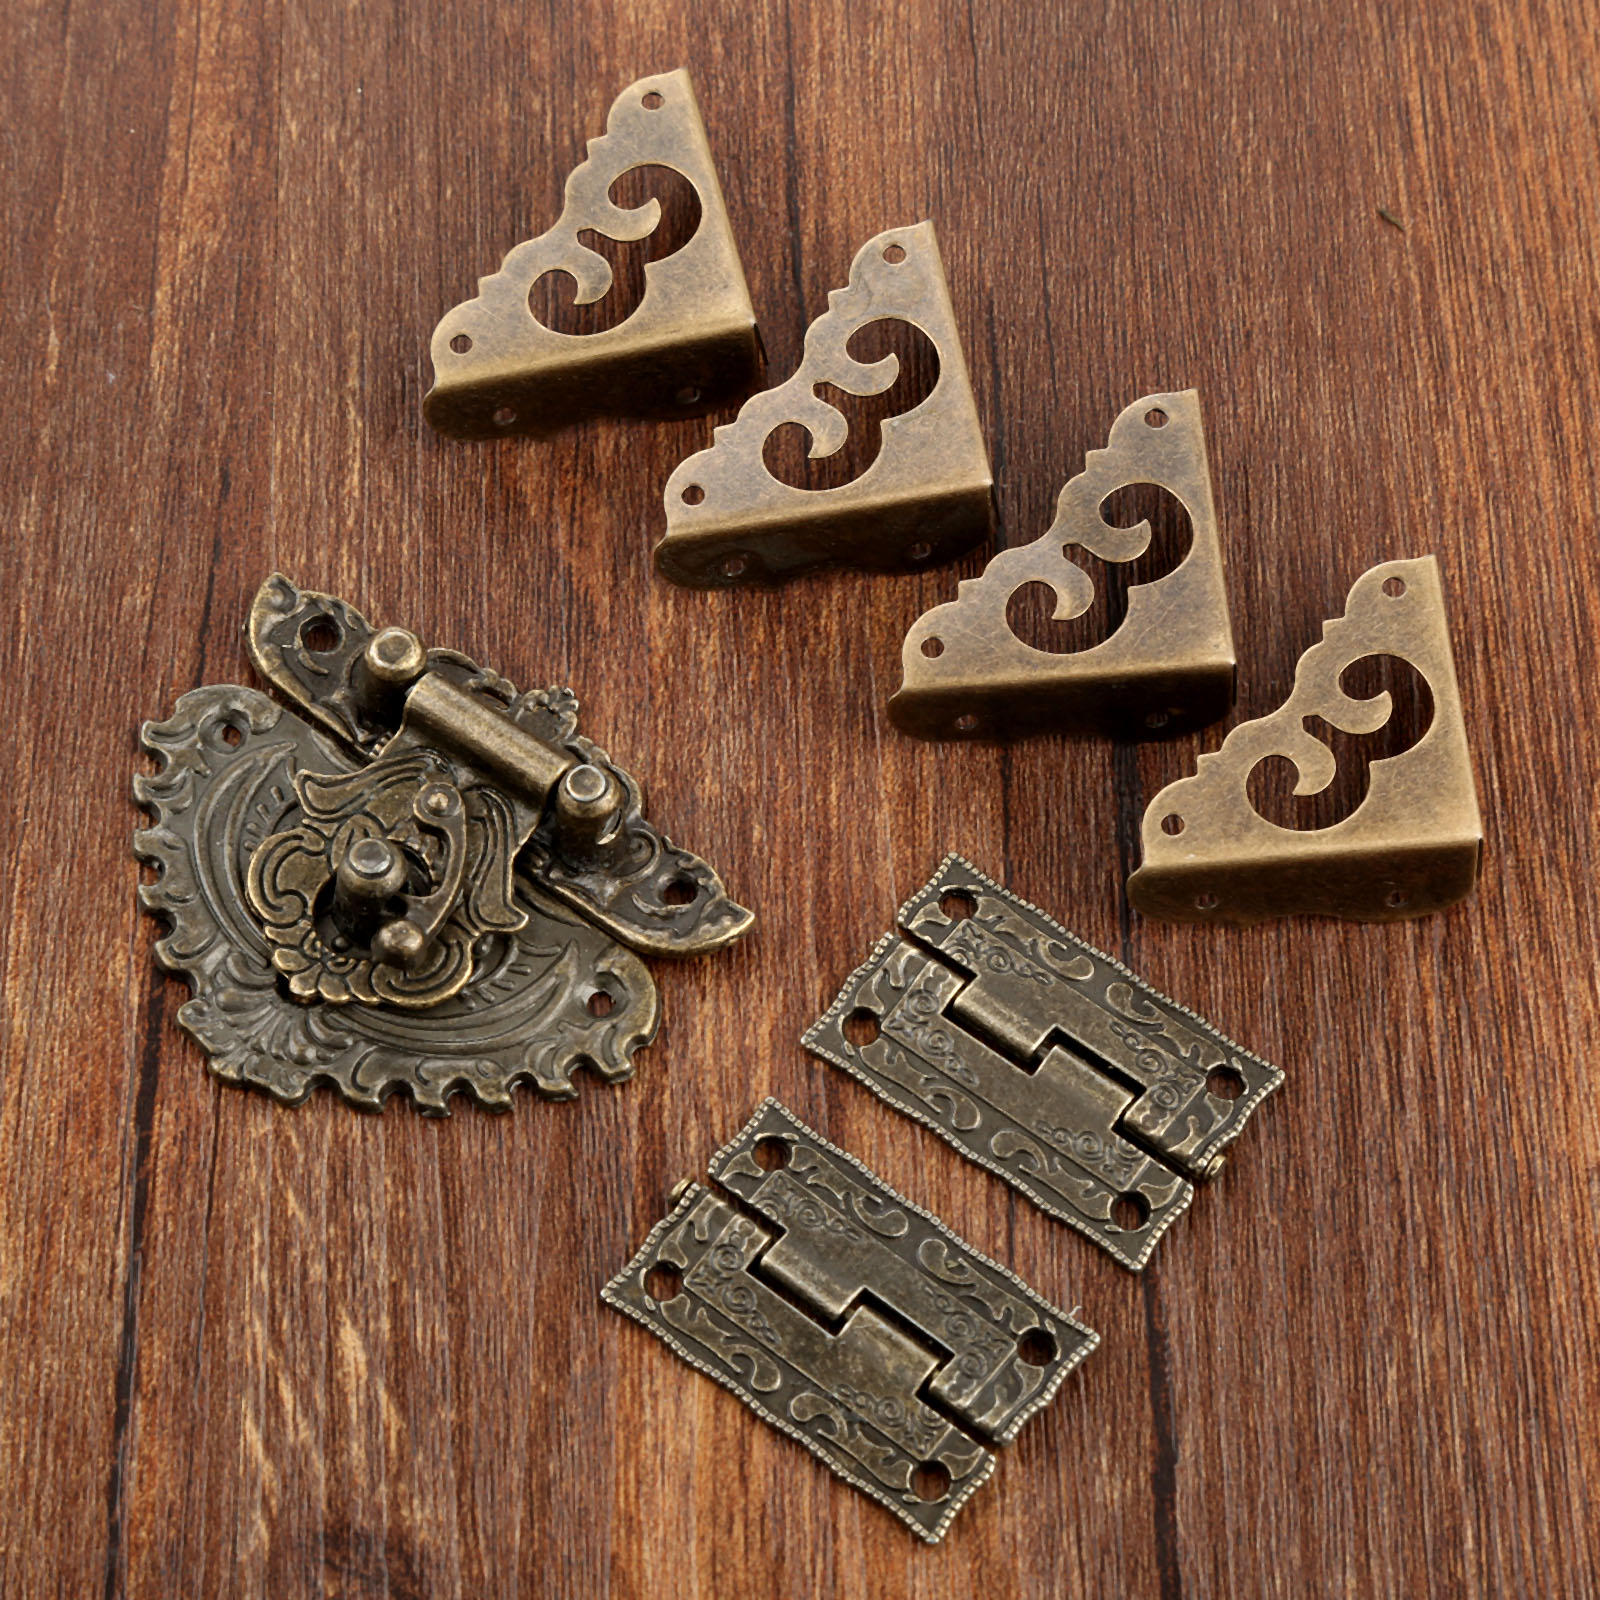 Antique Box Latch Hasp Toggle Buckle  2Pcs Cabinet Hinges 4Pcs Corner Decorative Protectors For Jewelry Wooden Box Hardware